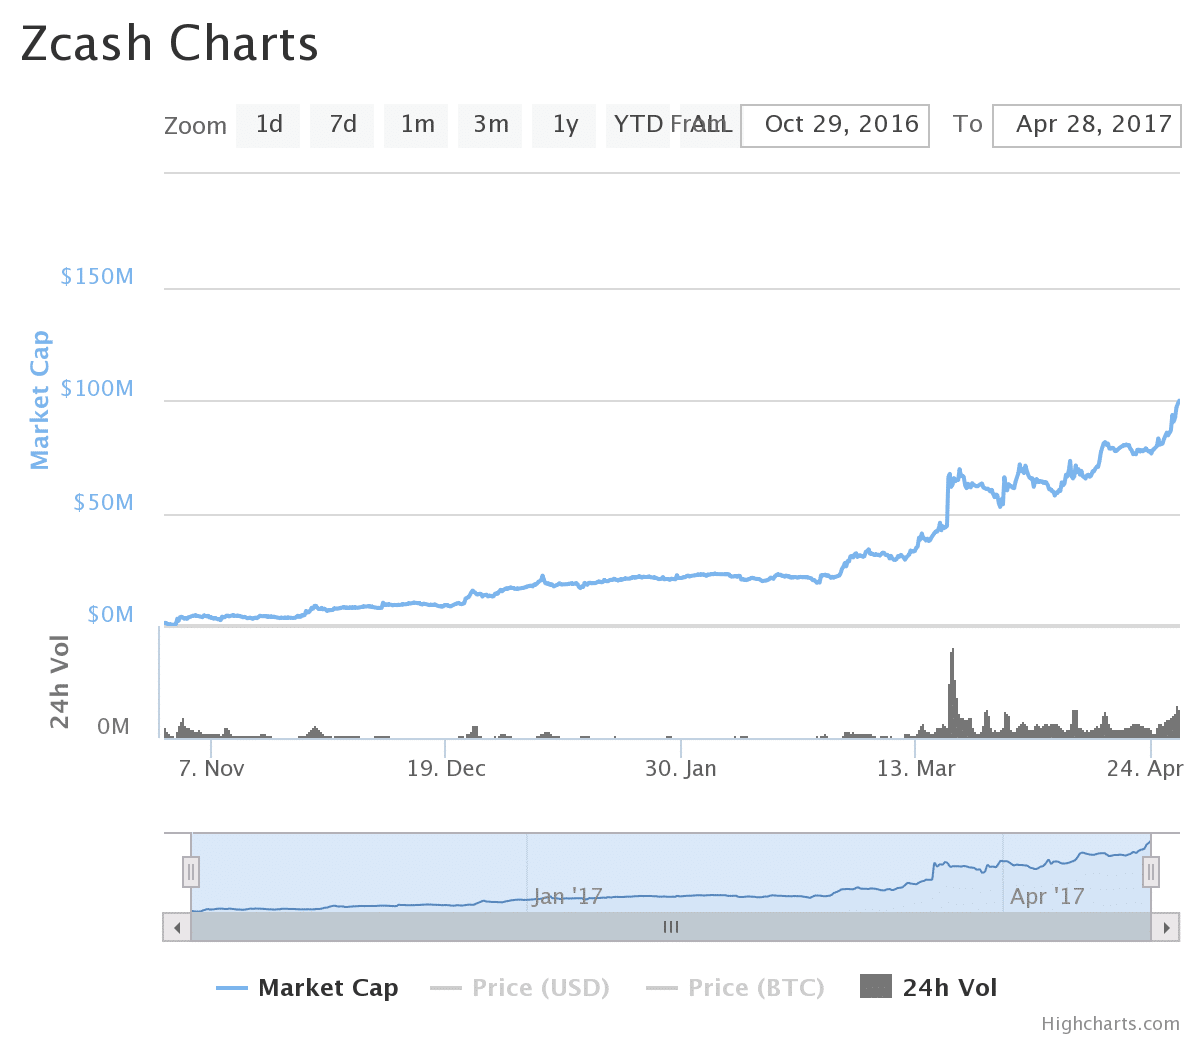 Chart of Zcash market cap history and growth to 100 million USD